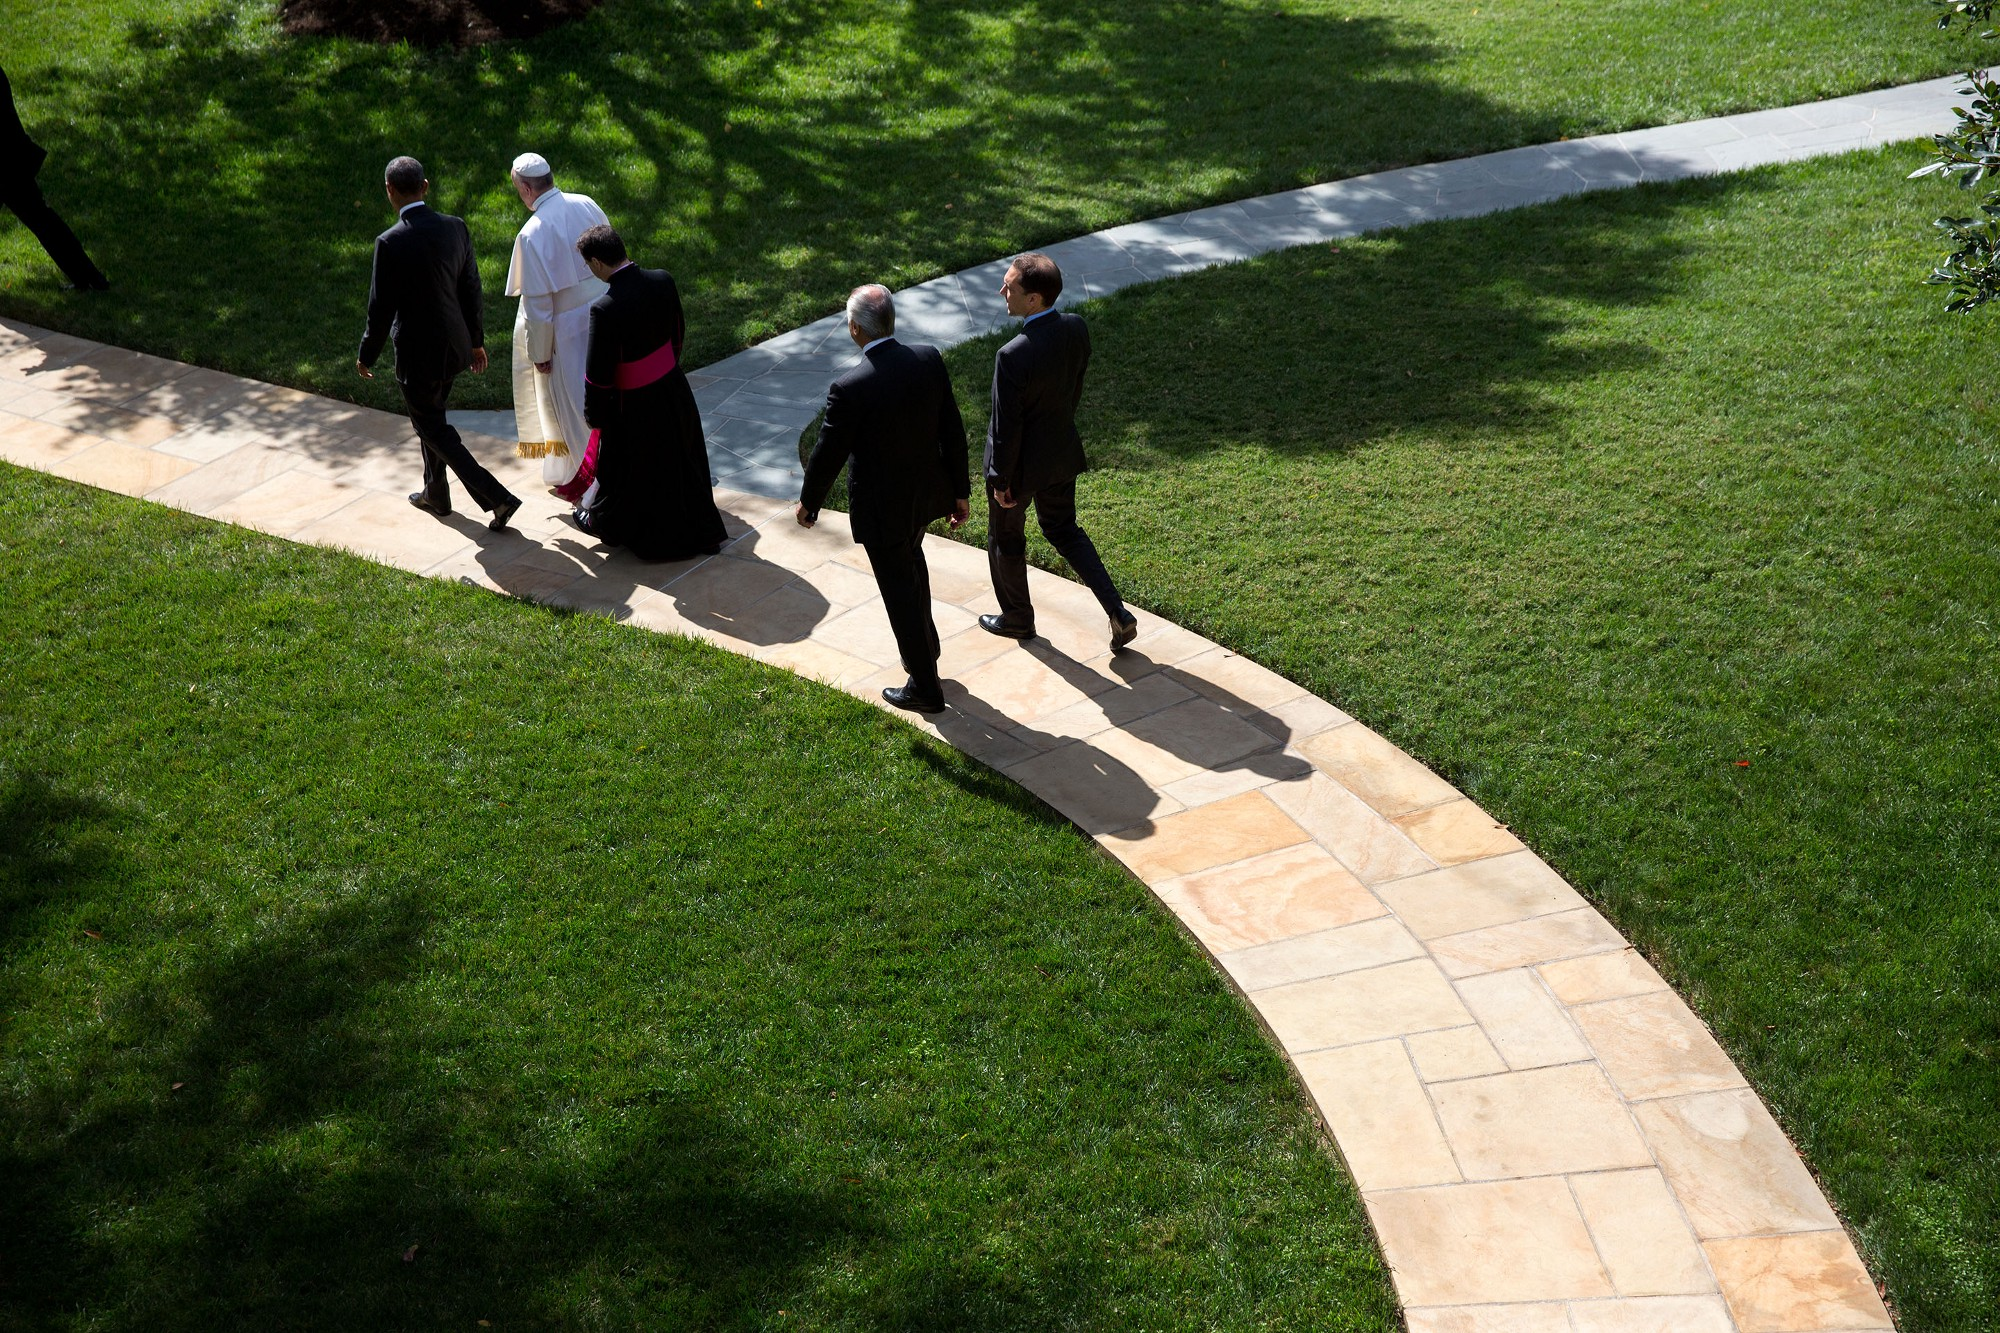 The President walks Pope Francis to his motorcade on the South Lawn. (Official White House Photo by Lawrence Jackson)